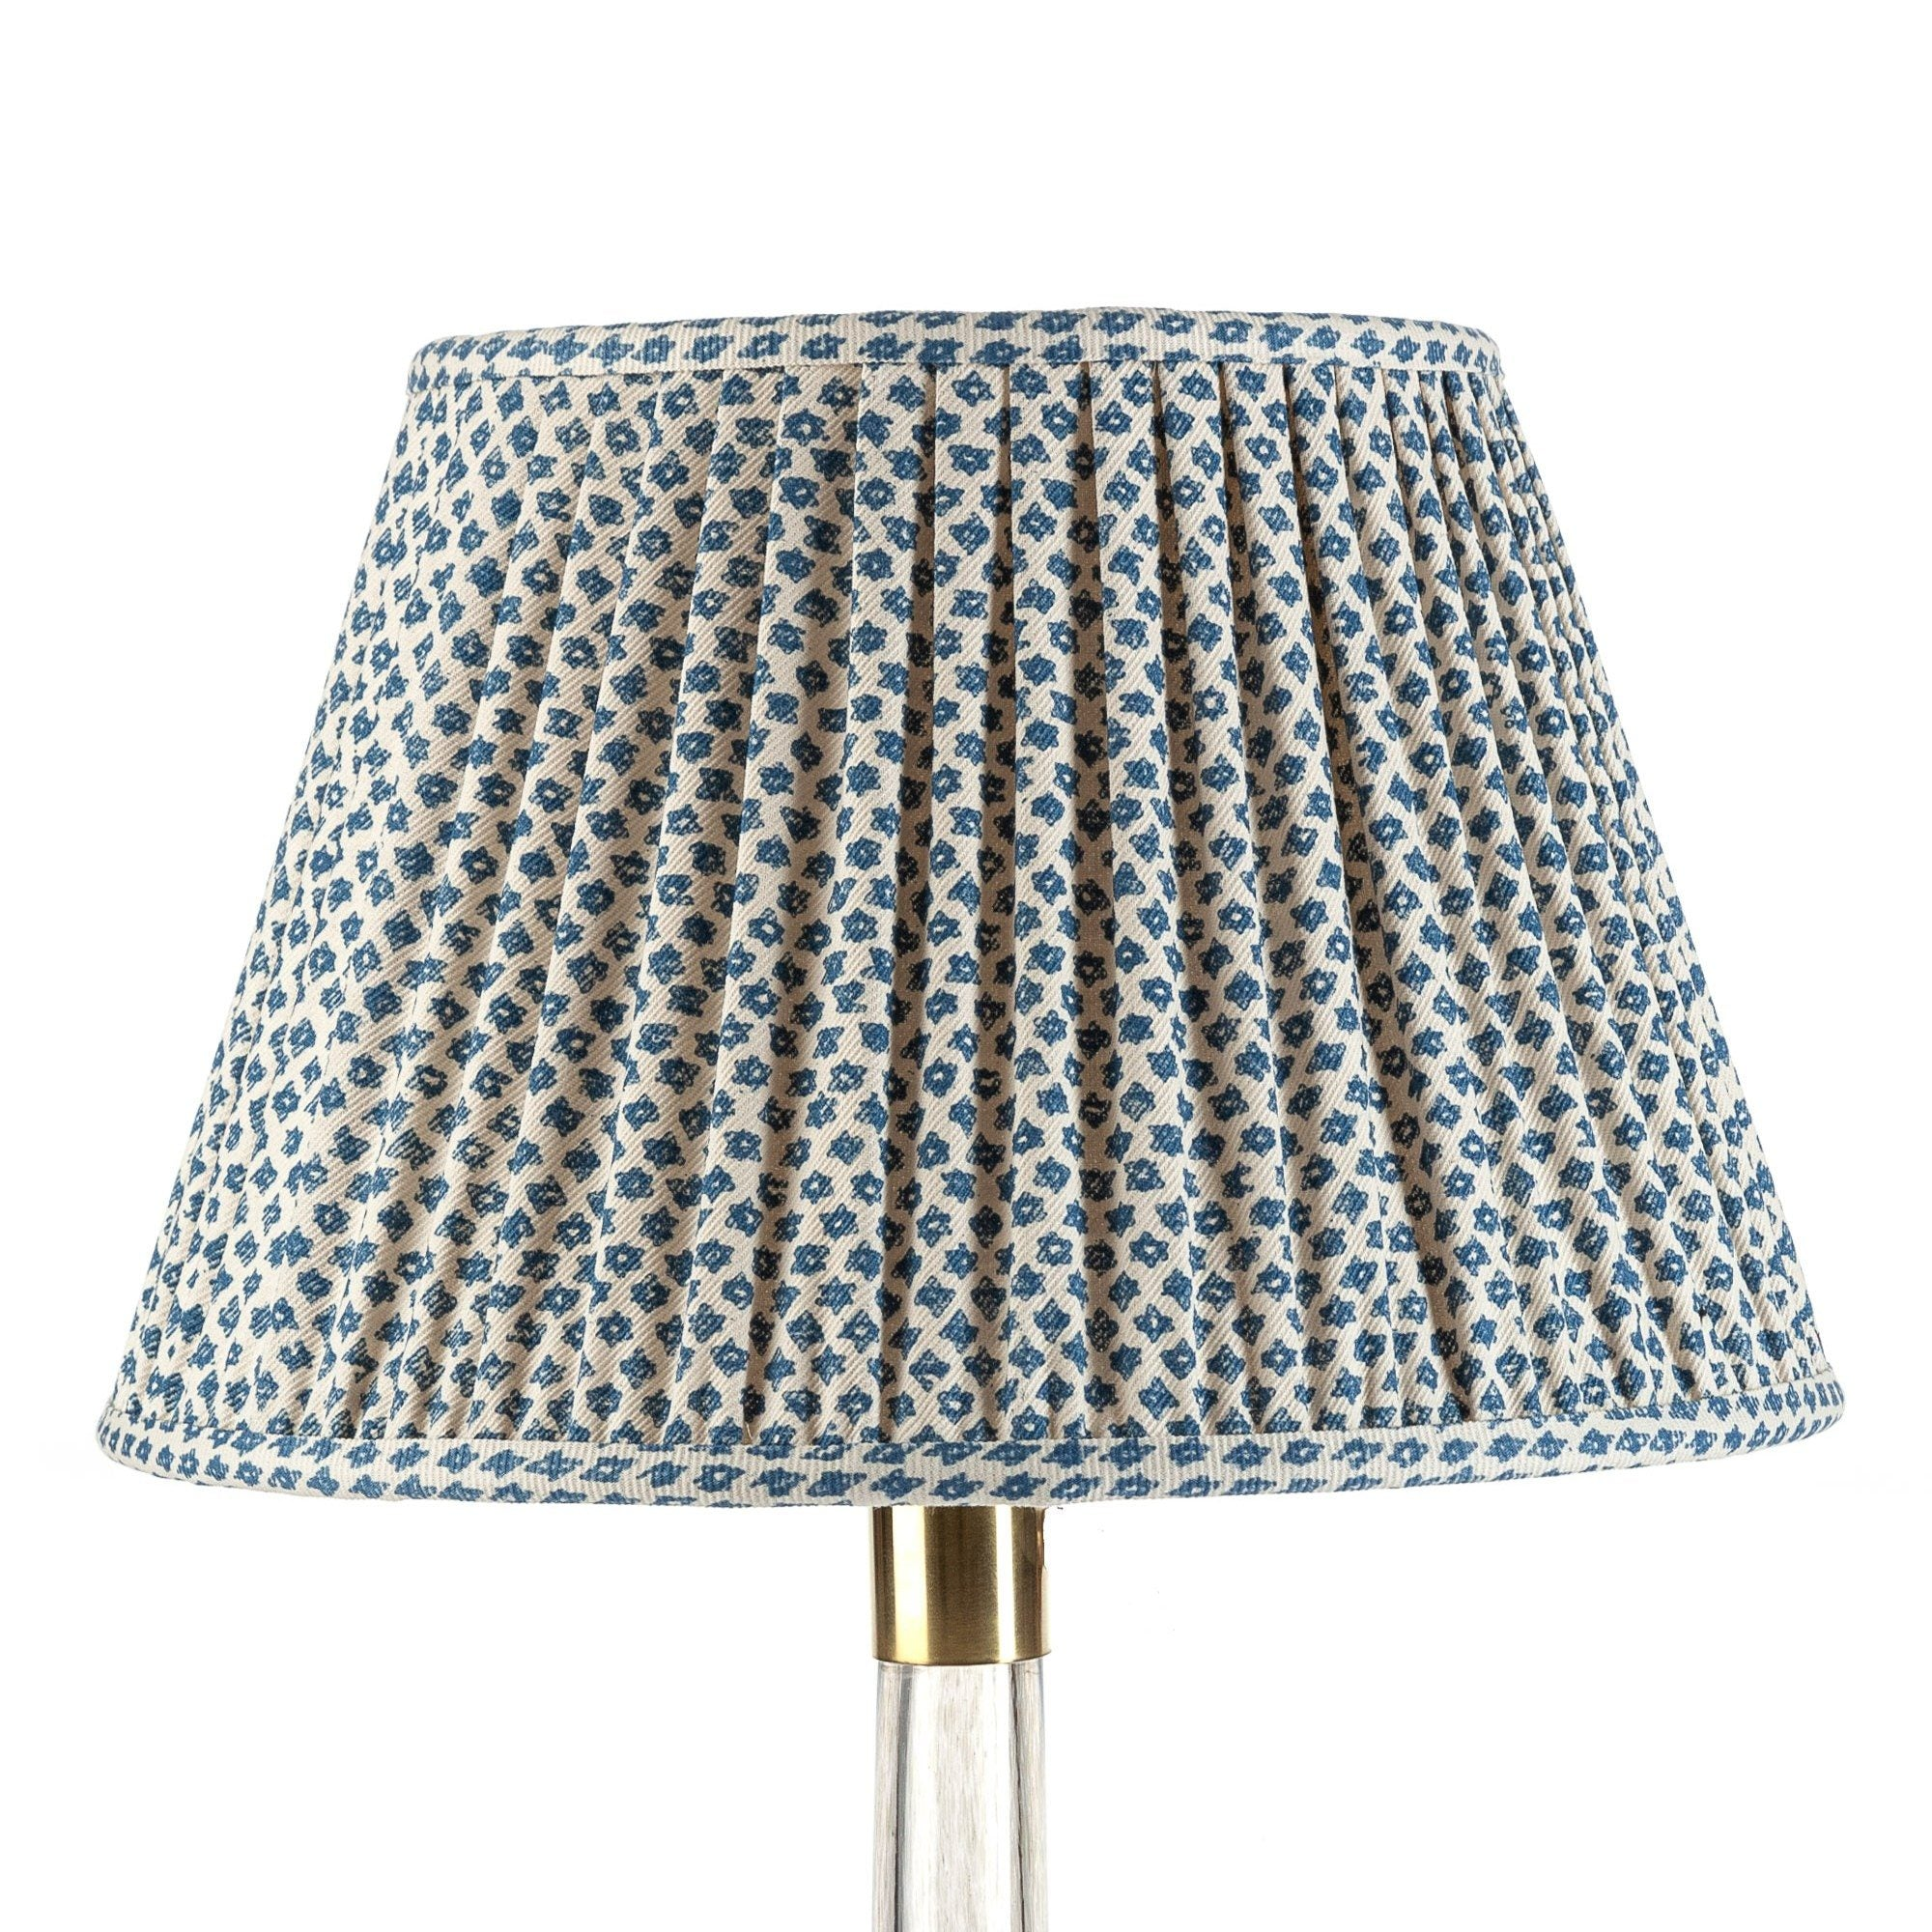 Fermoie Lampshade in Blue Marden